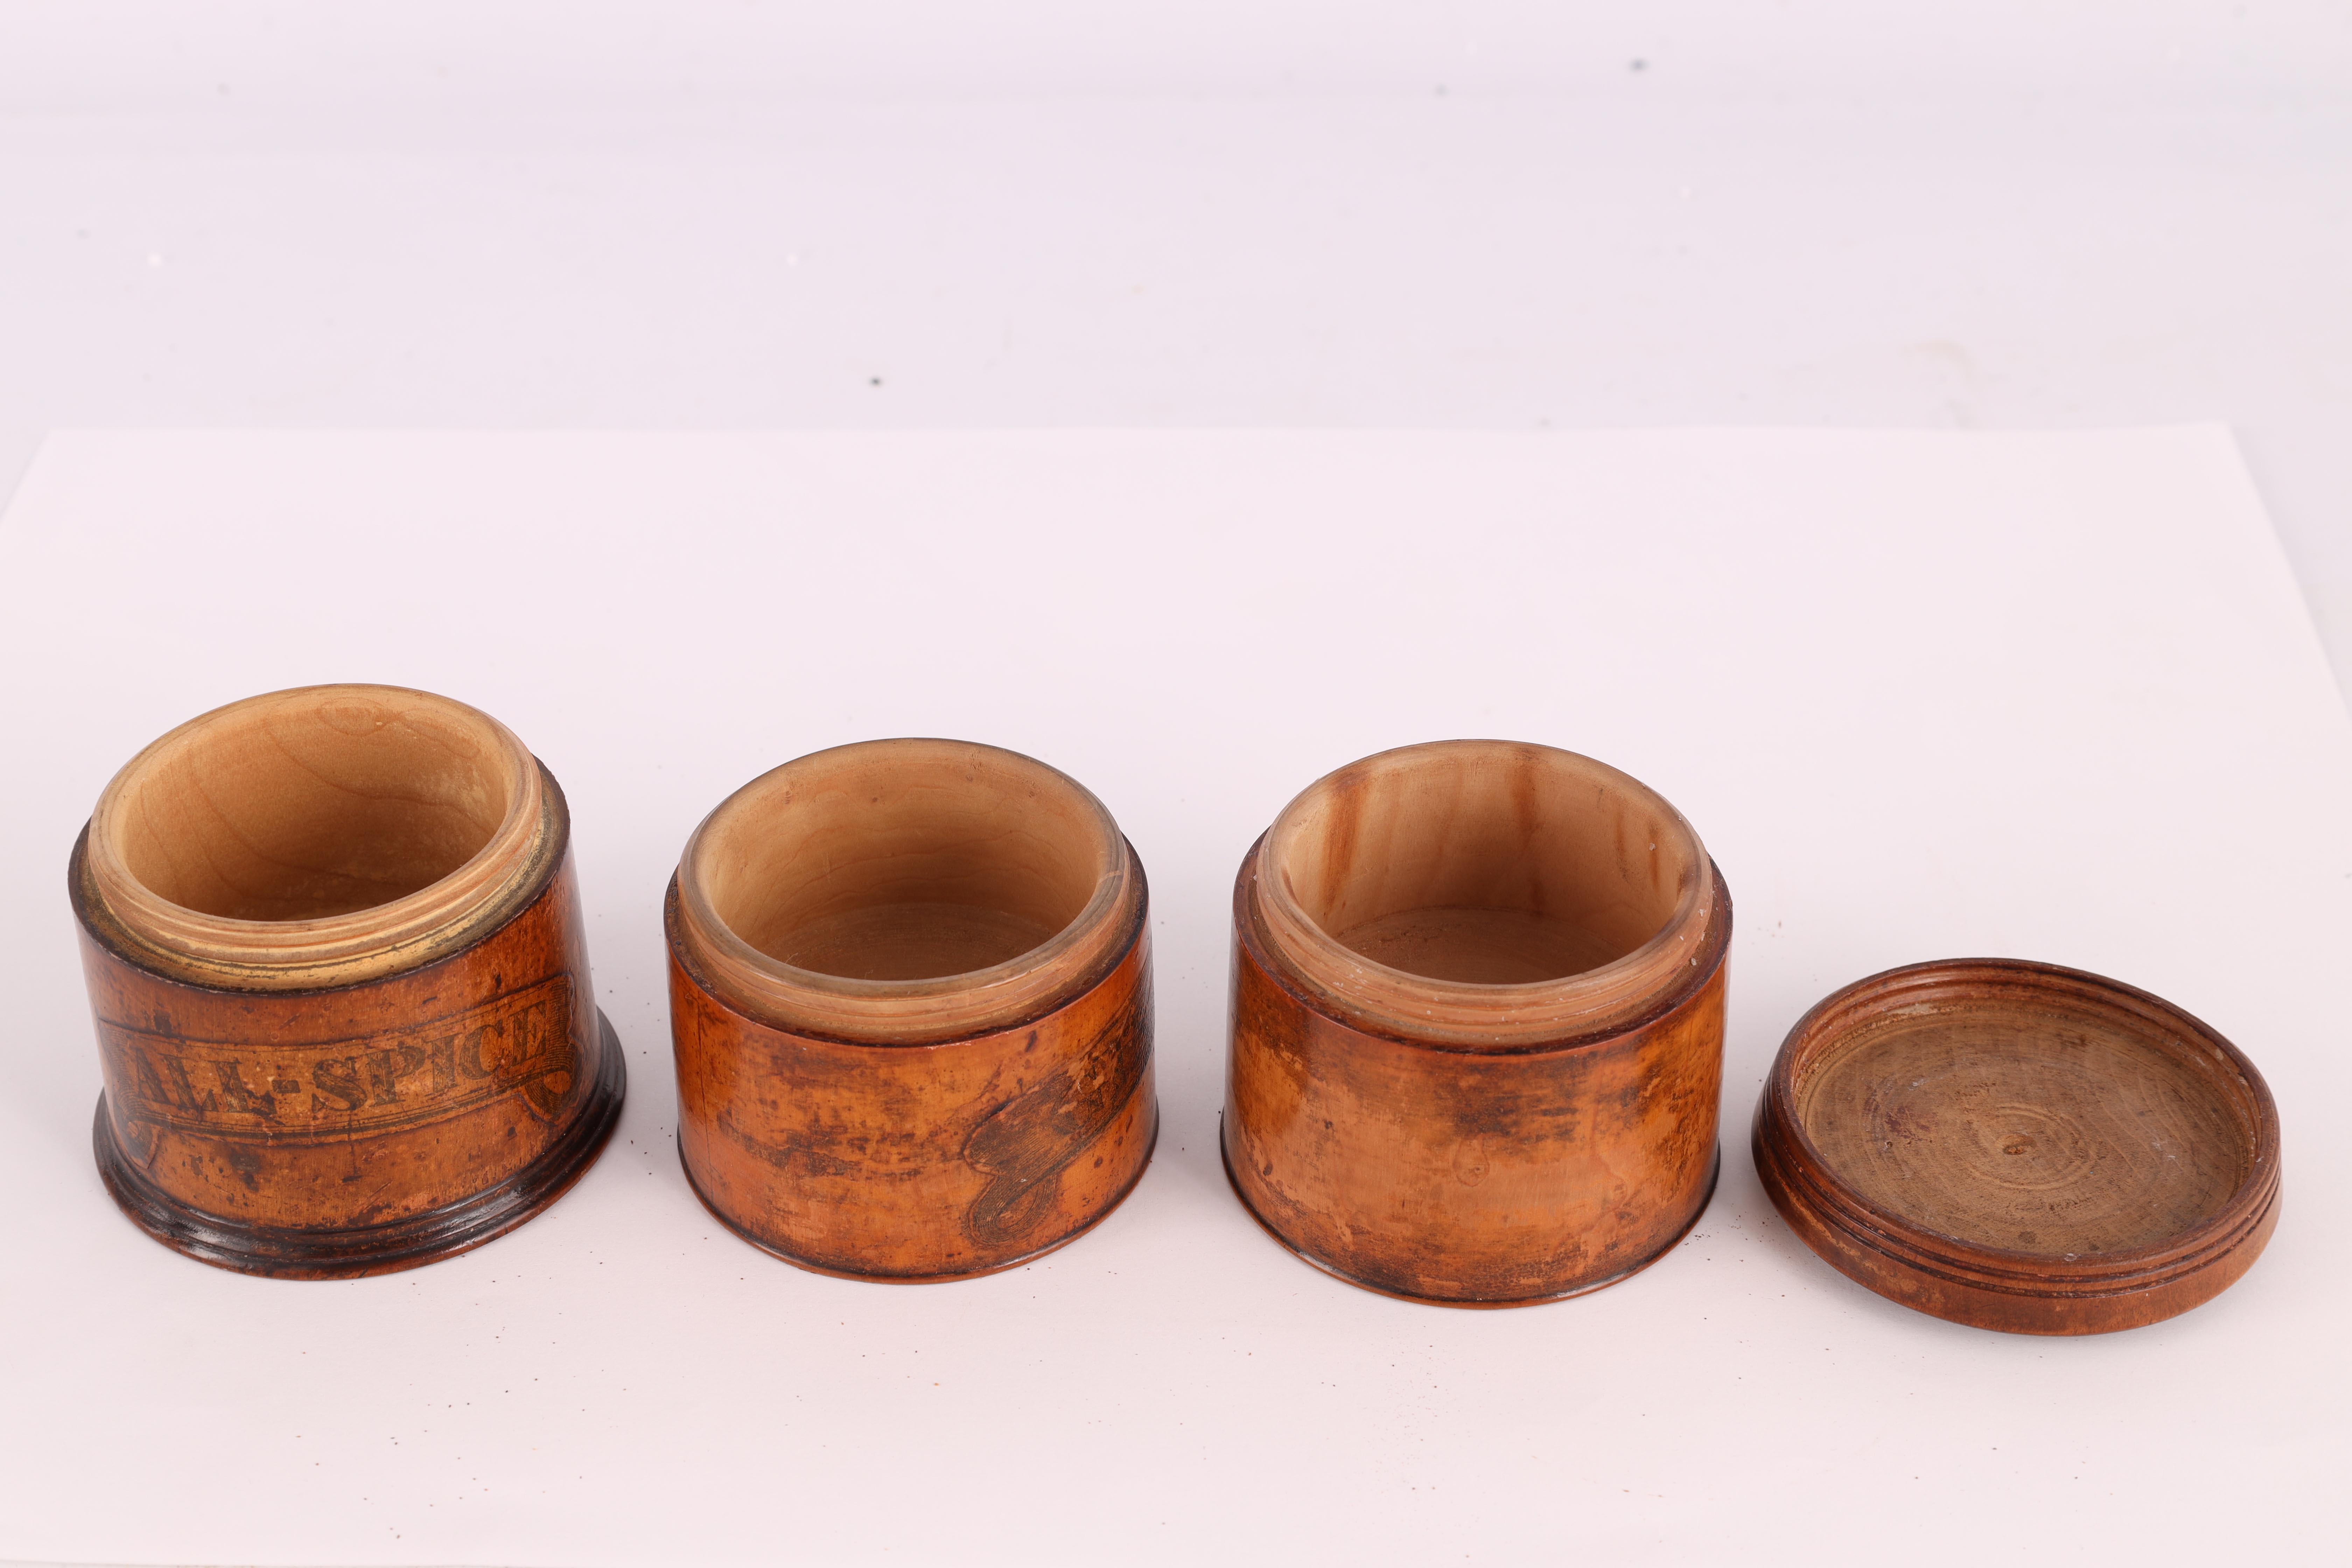 TWO EARLY 19TH CENTURY SYCAMORE TREEN SPICE TOWERS with original labels, the three stack 15cm - Image 11 of 13